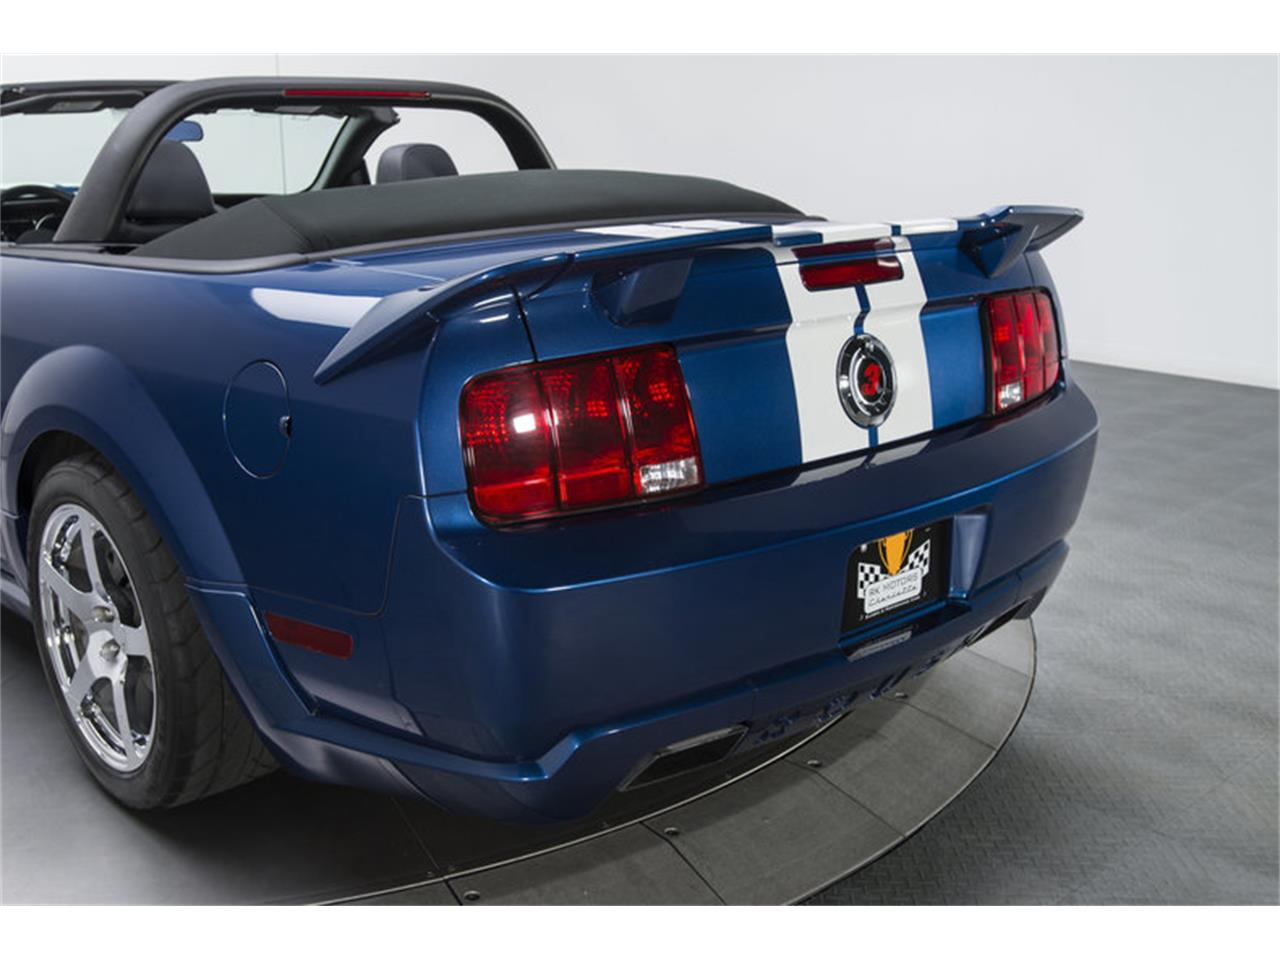 Large Picture of '07 Mustang located in North Carolina Offered by RK Motors Charlotte - MFKM